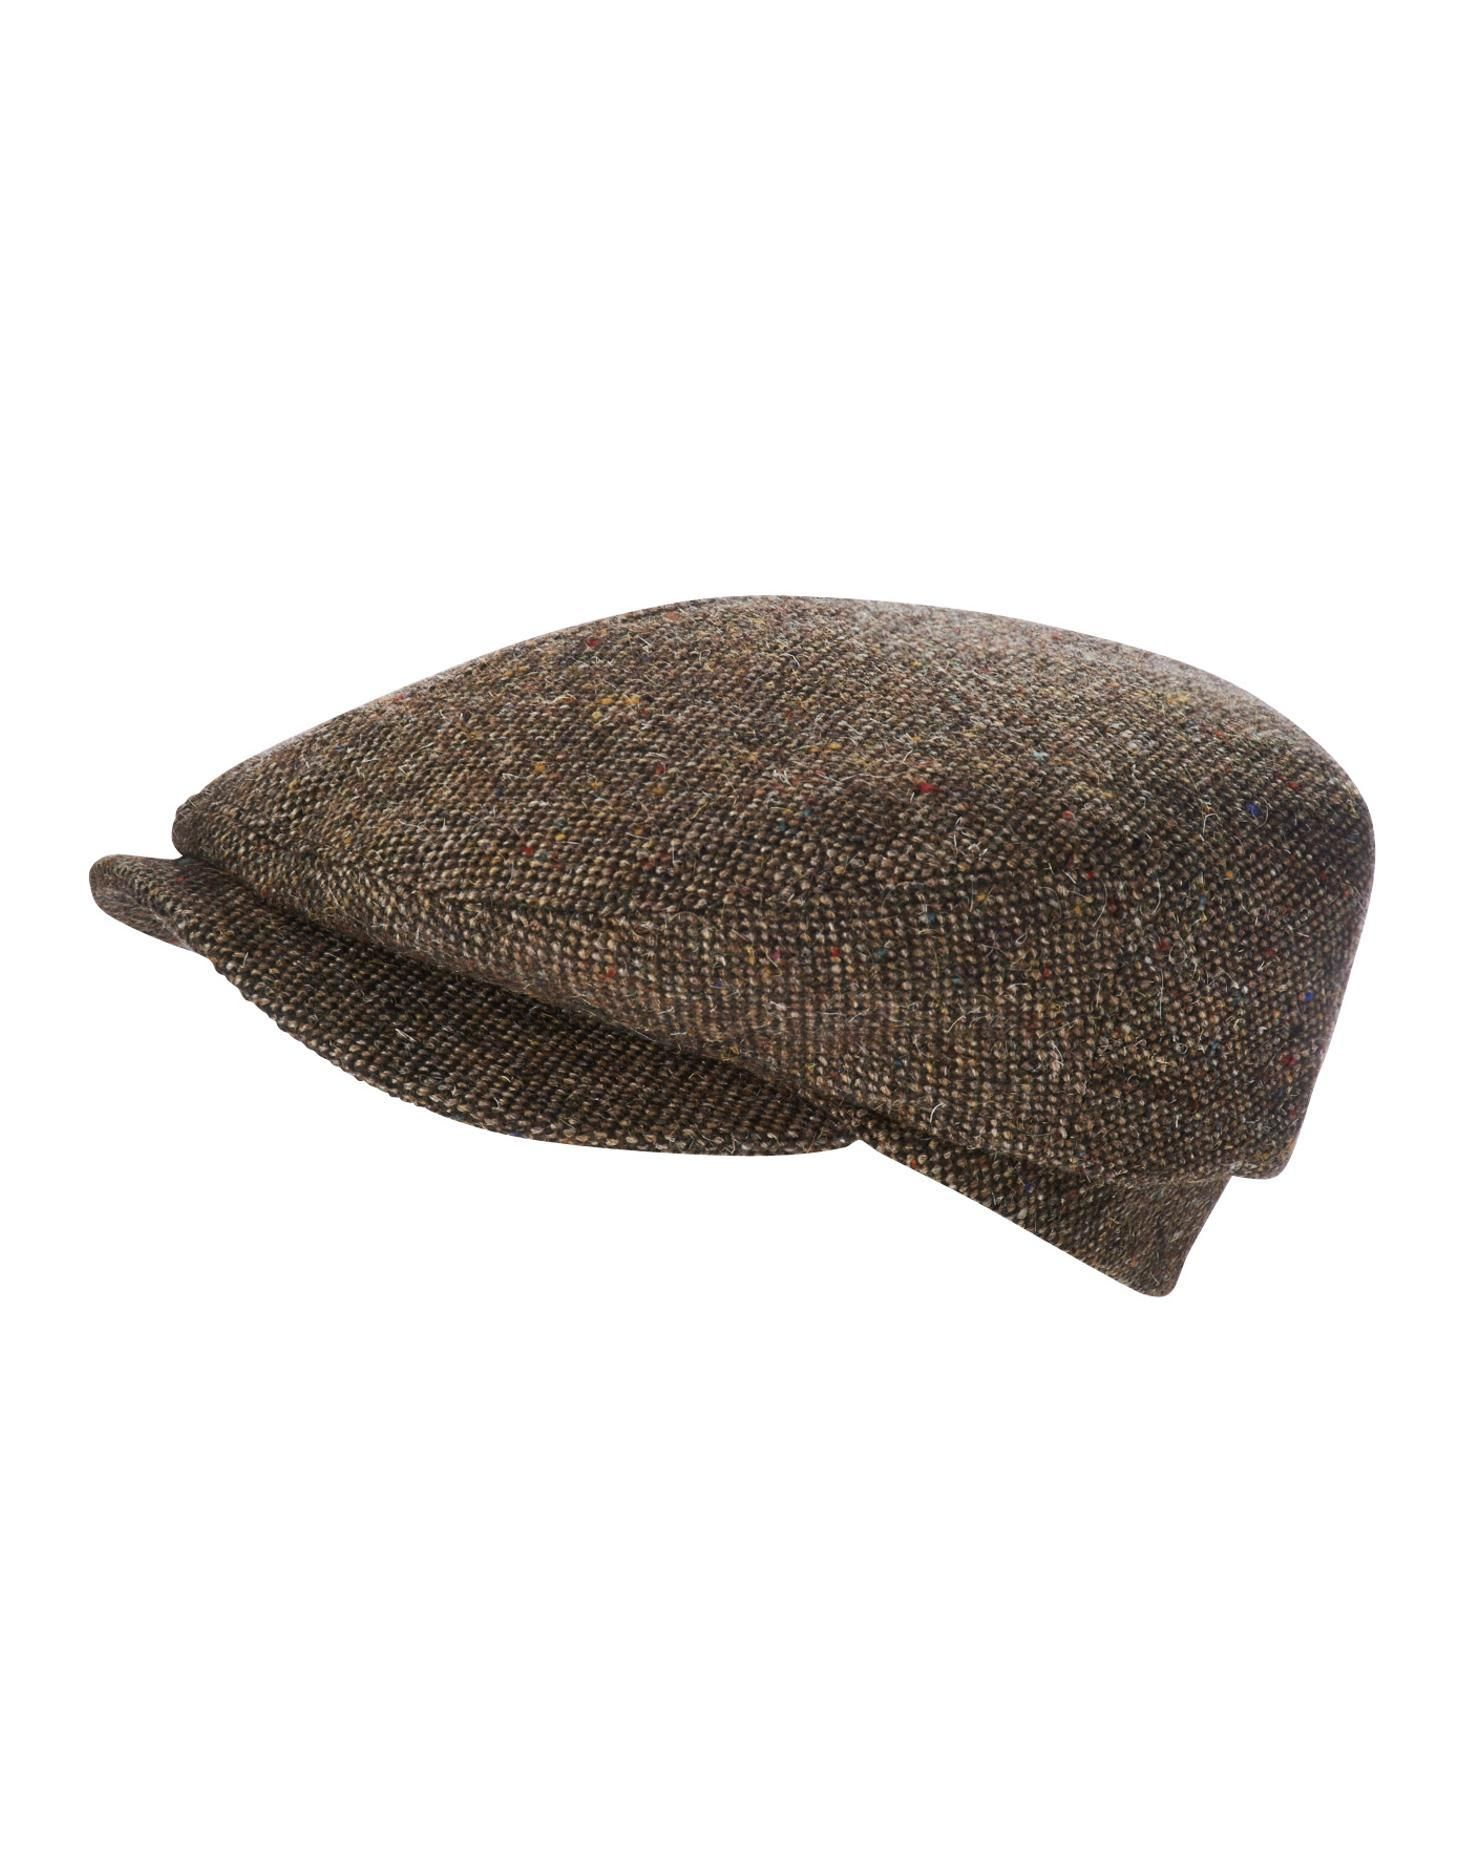 Brown Donald Tweed Whippet Womens Tweed Flat Cap  12d98924e72